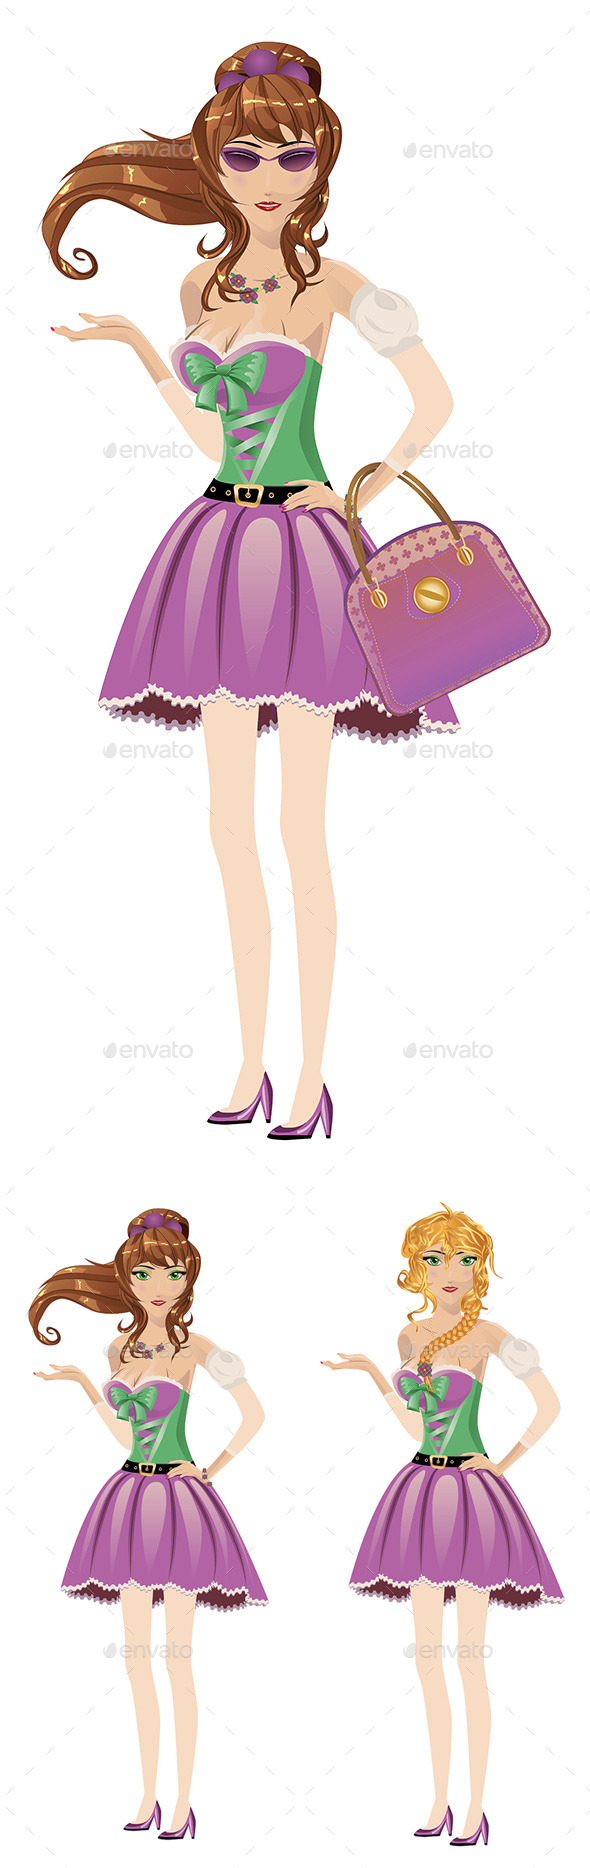 GraphicRiver Girl in Spring Dress 8834122